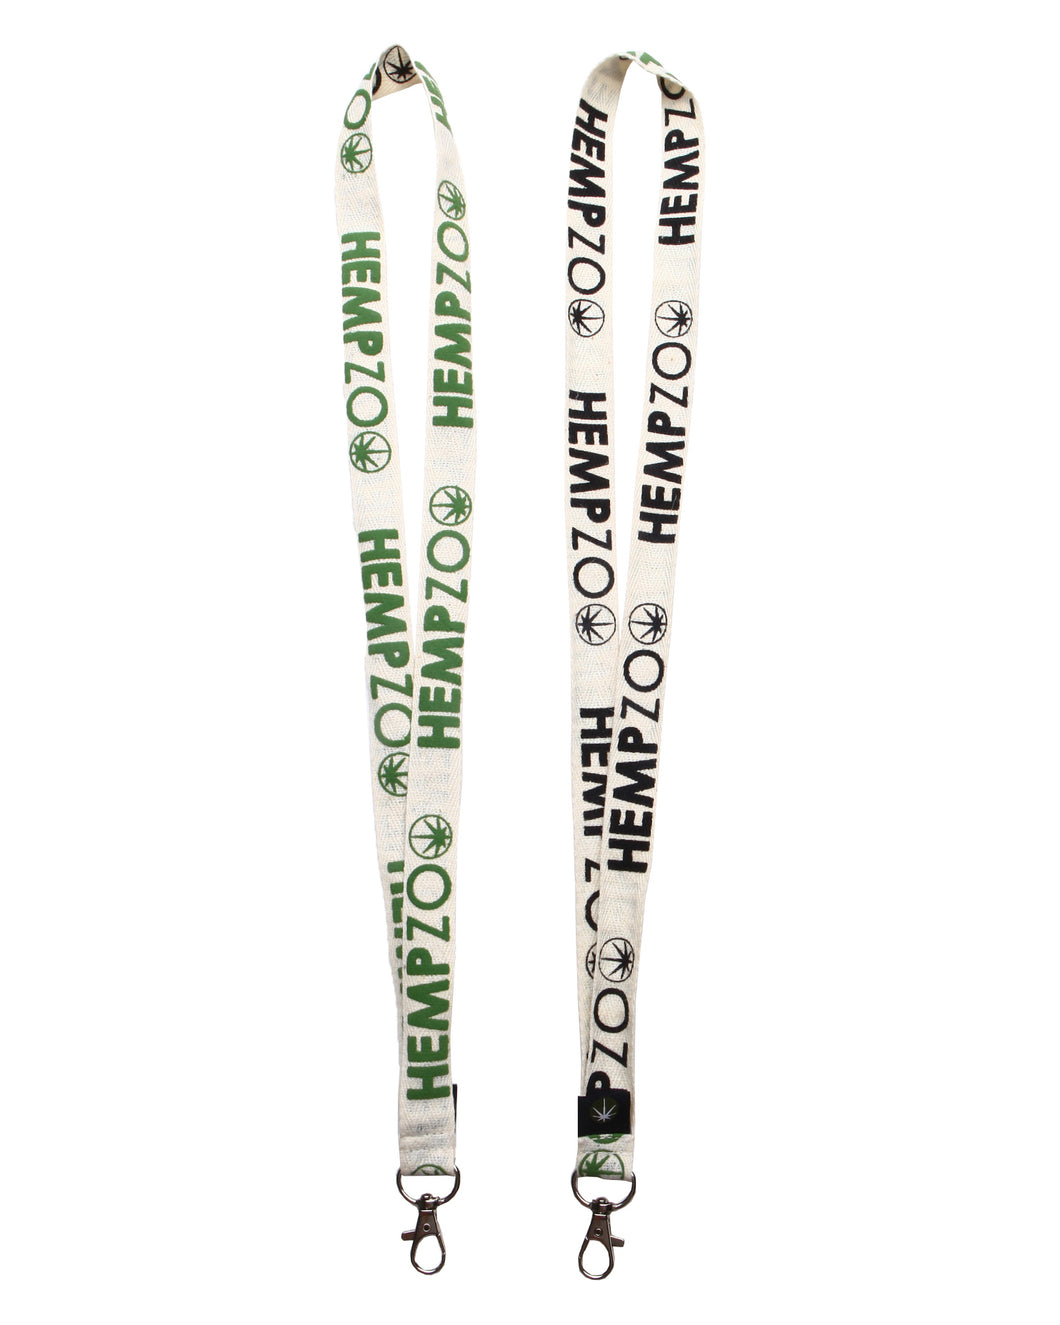 HEMP LANYARD - HEMPZOO Sustainable organic hemp clothing hats accessories